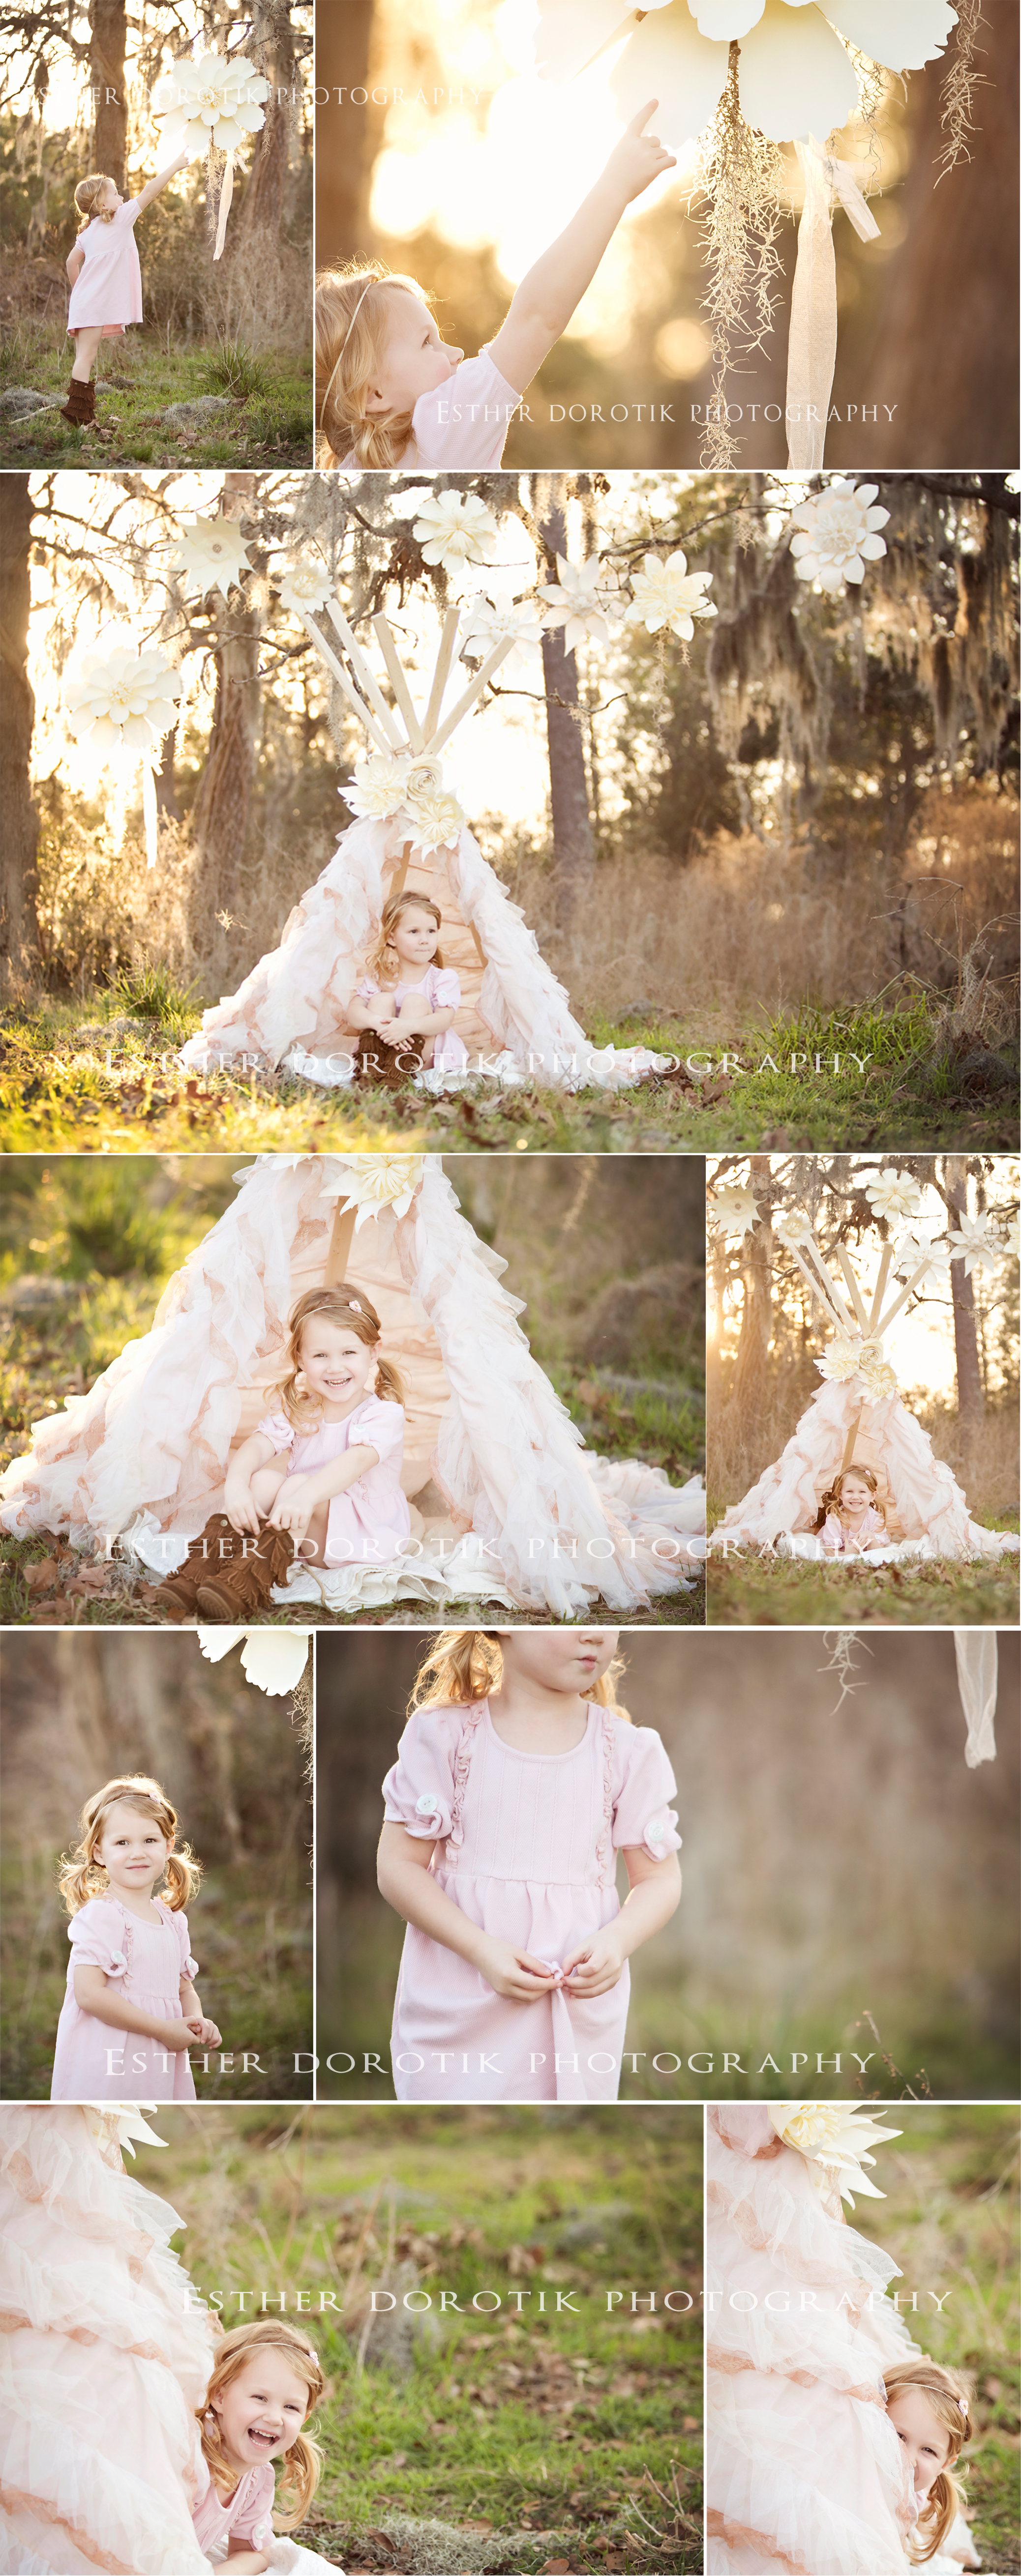 Keller-child-photographer-captures-whimsical-pictures-of-little-girl-in-teepee